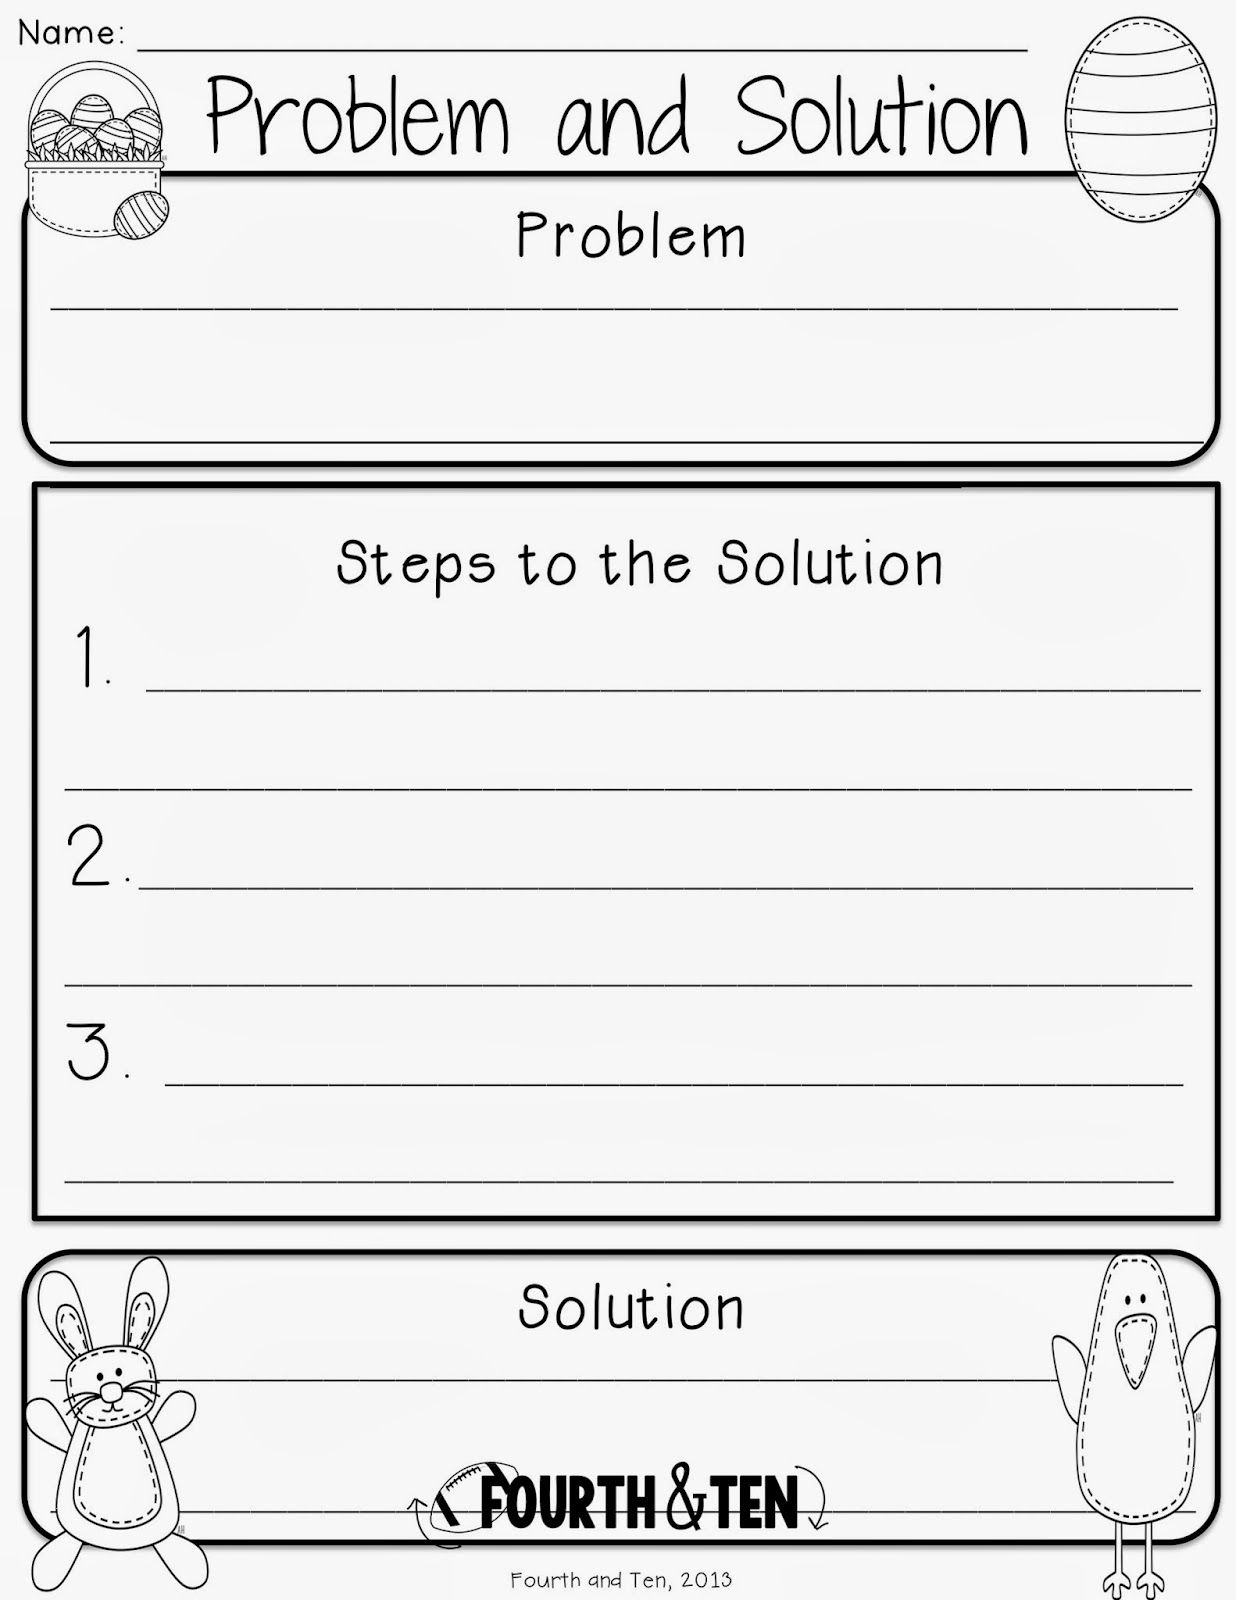 small resolution of Easter Graphic Organizers - Reading/Writing - Problem Solution   Reading  worksheets